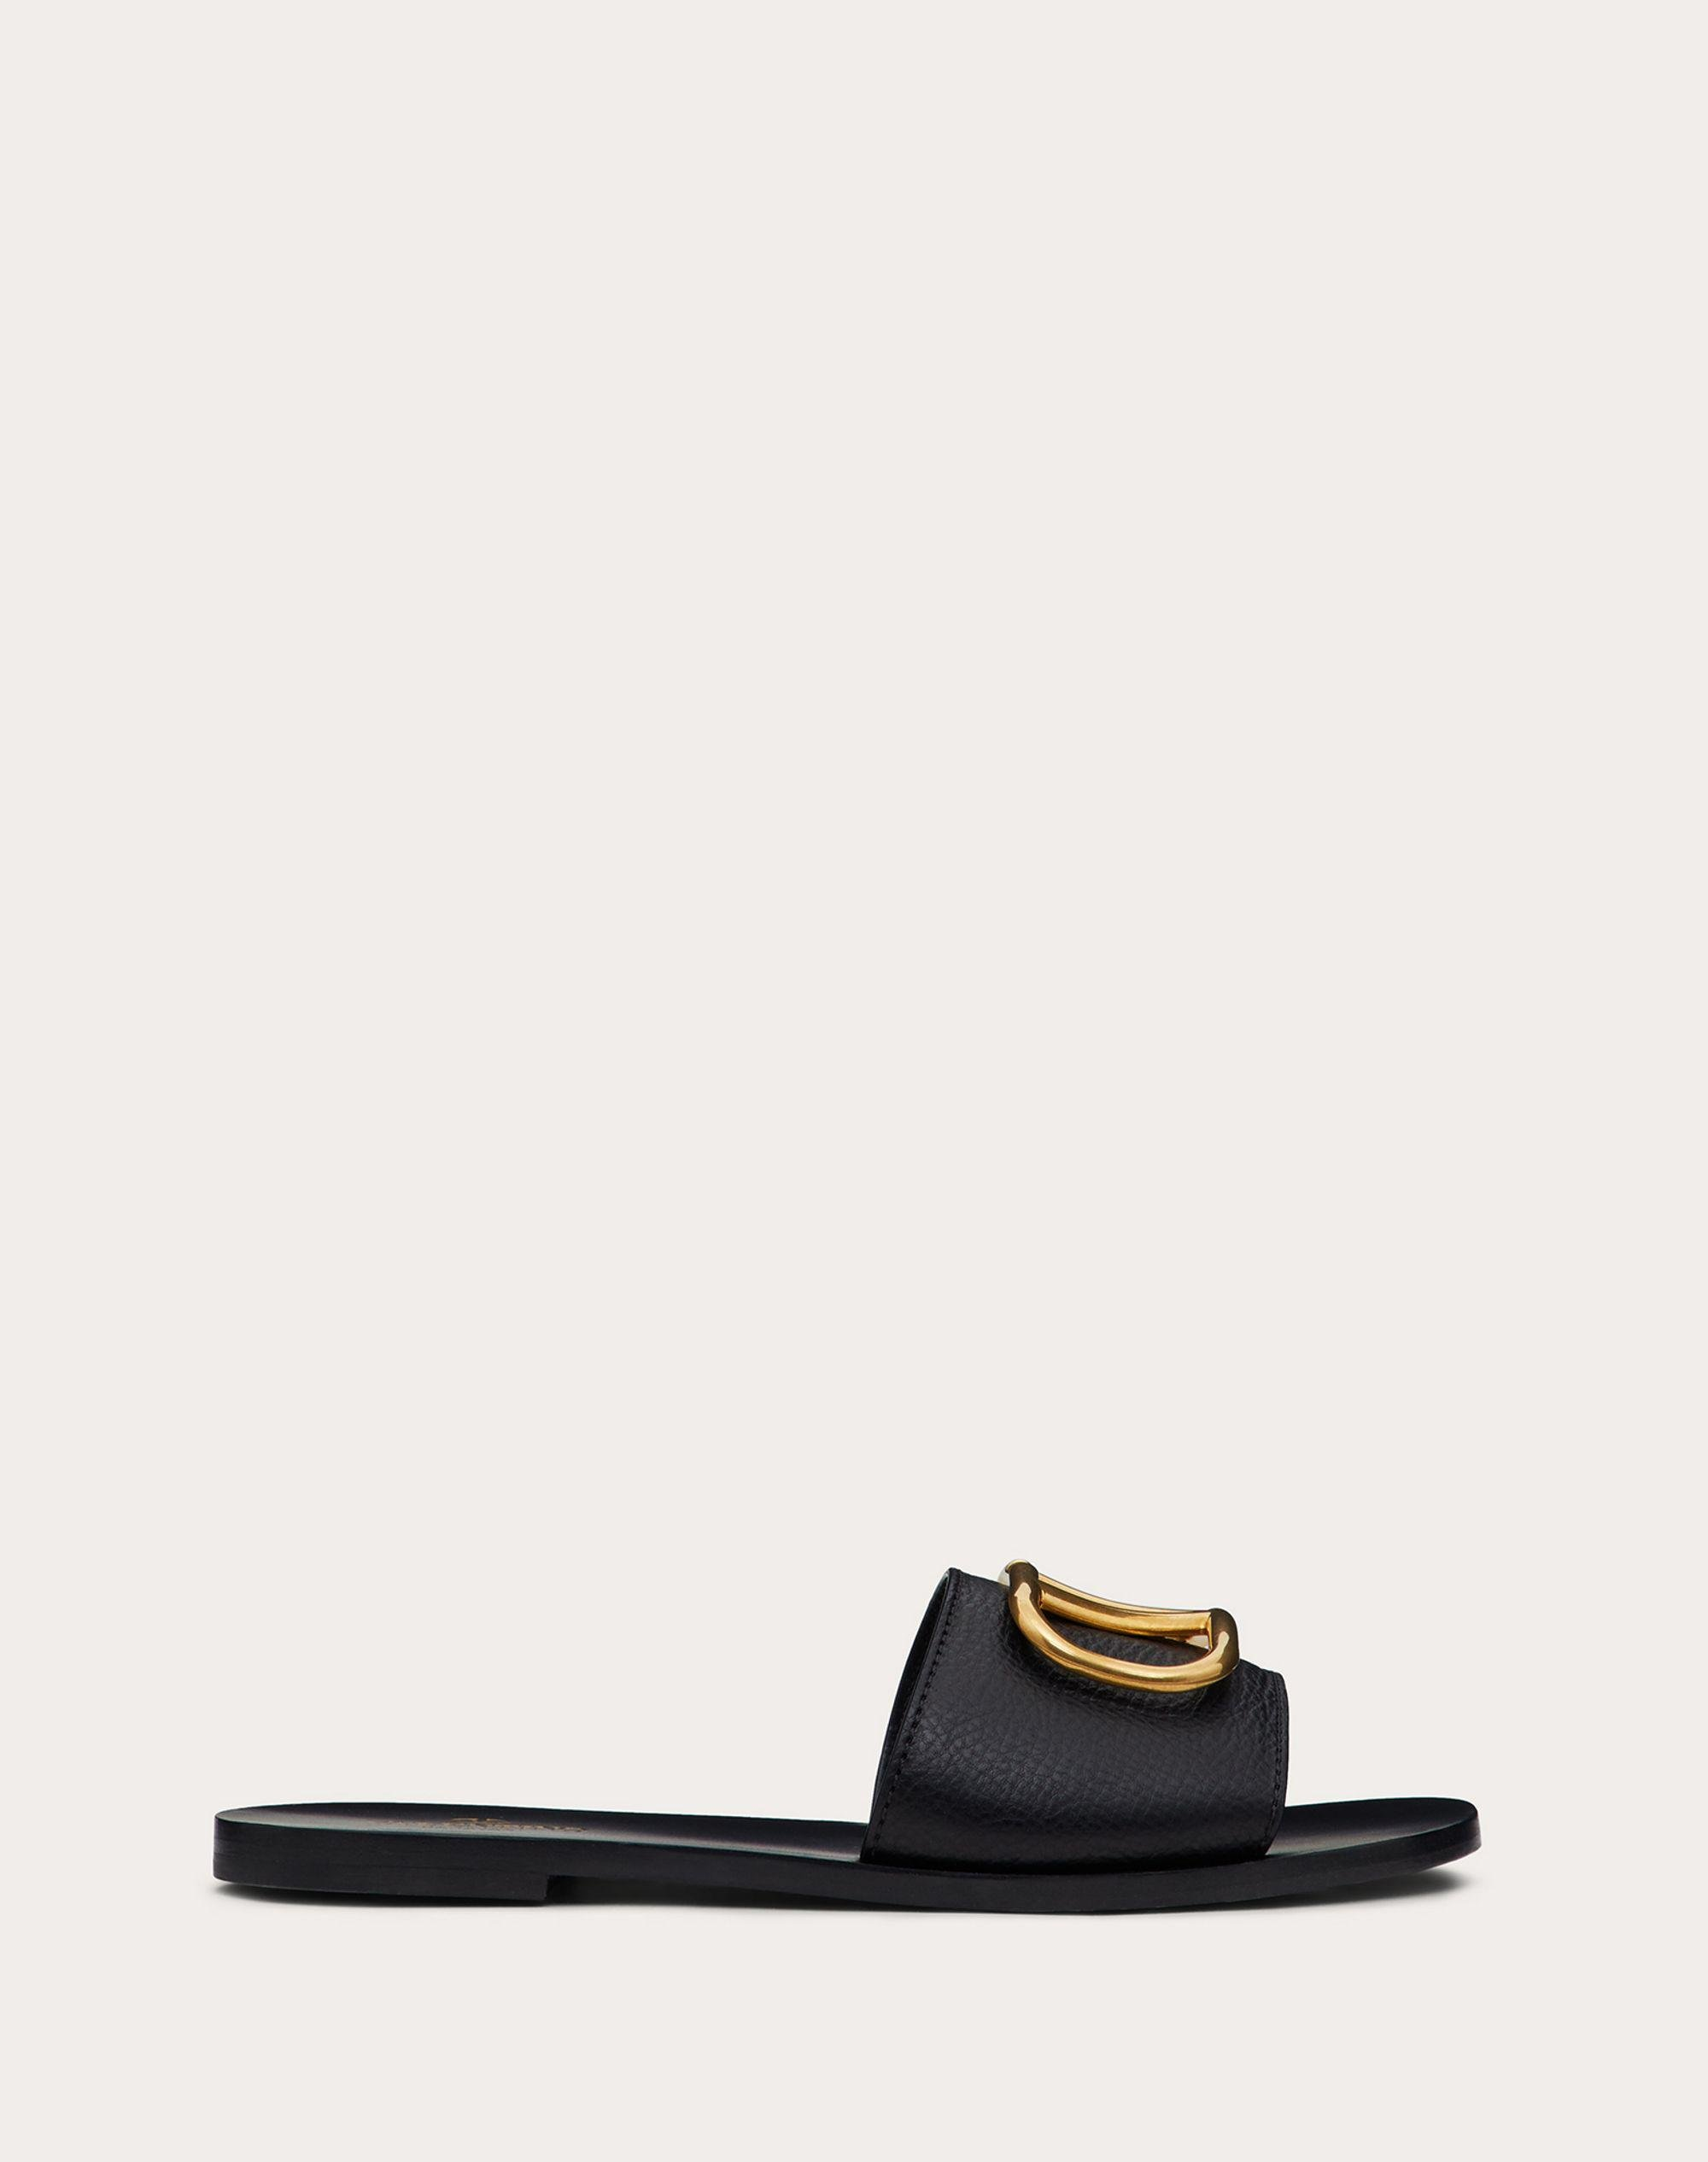 VLogo Signature Slide Sandal in Grainy Cowhide with Accessory